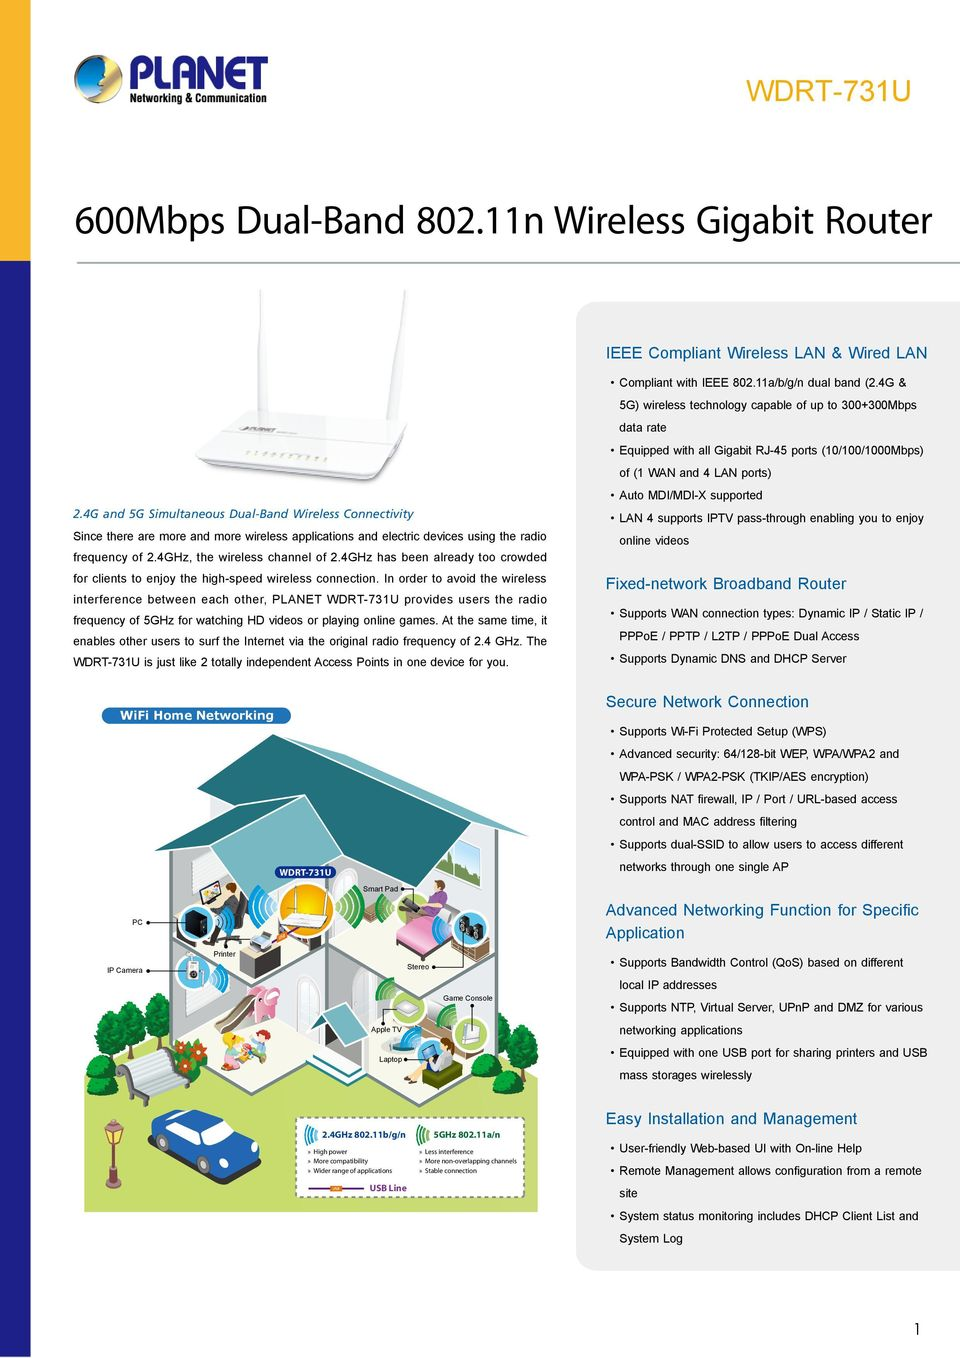 4G and 5G Simultaneous Dual-Band Wireless Connectivity Since there are more and more wireless applications and electric devices using the radio frequency of 2.4GHz, the wireless channel of 2.